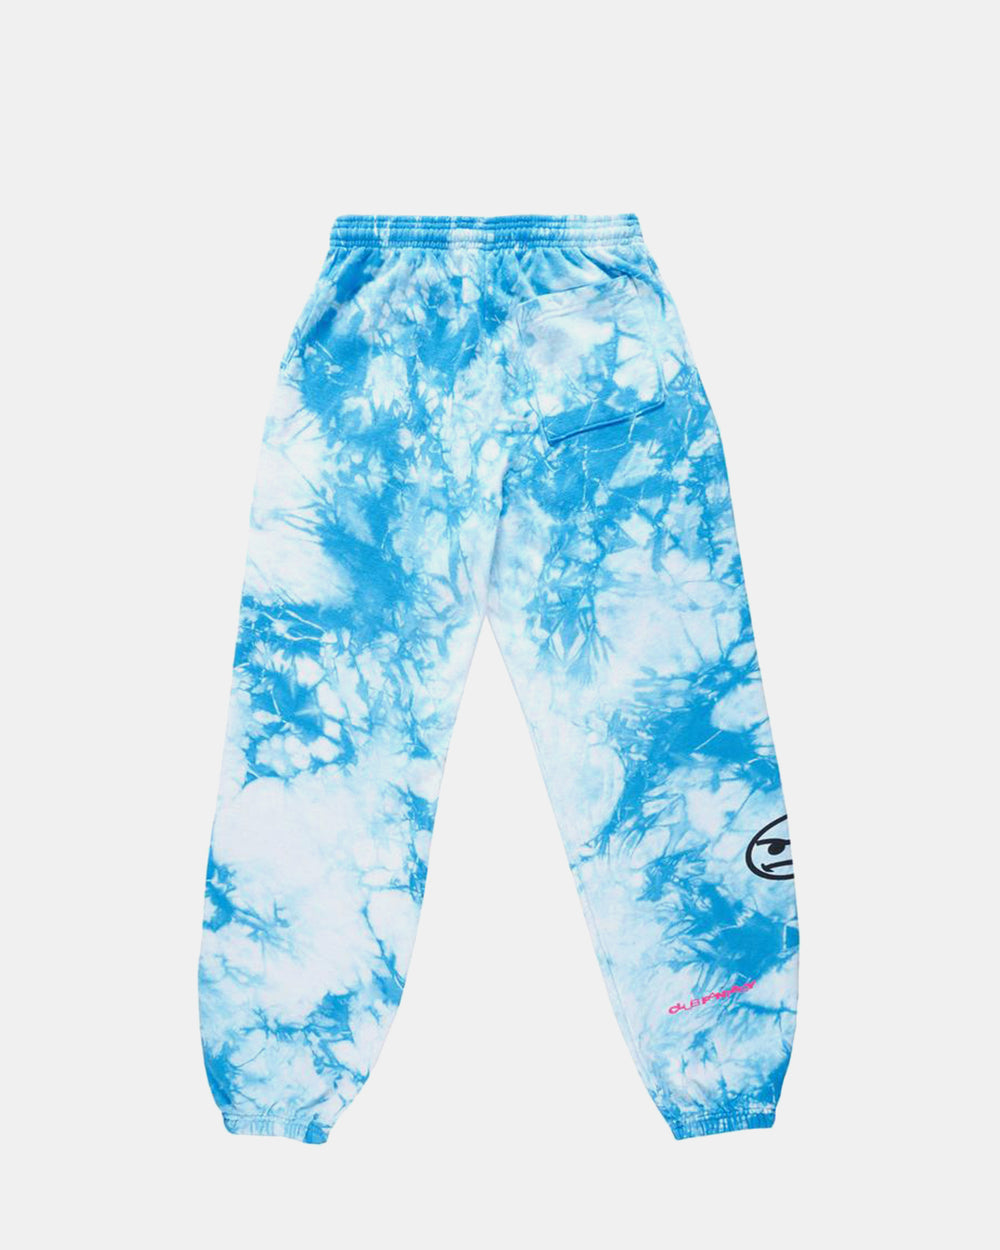 Club Fantasy - Playtime Sweatpants (White)